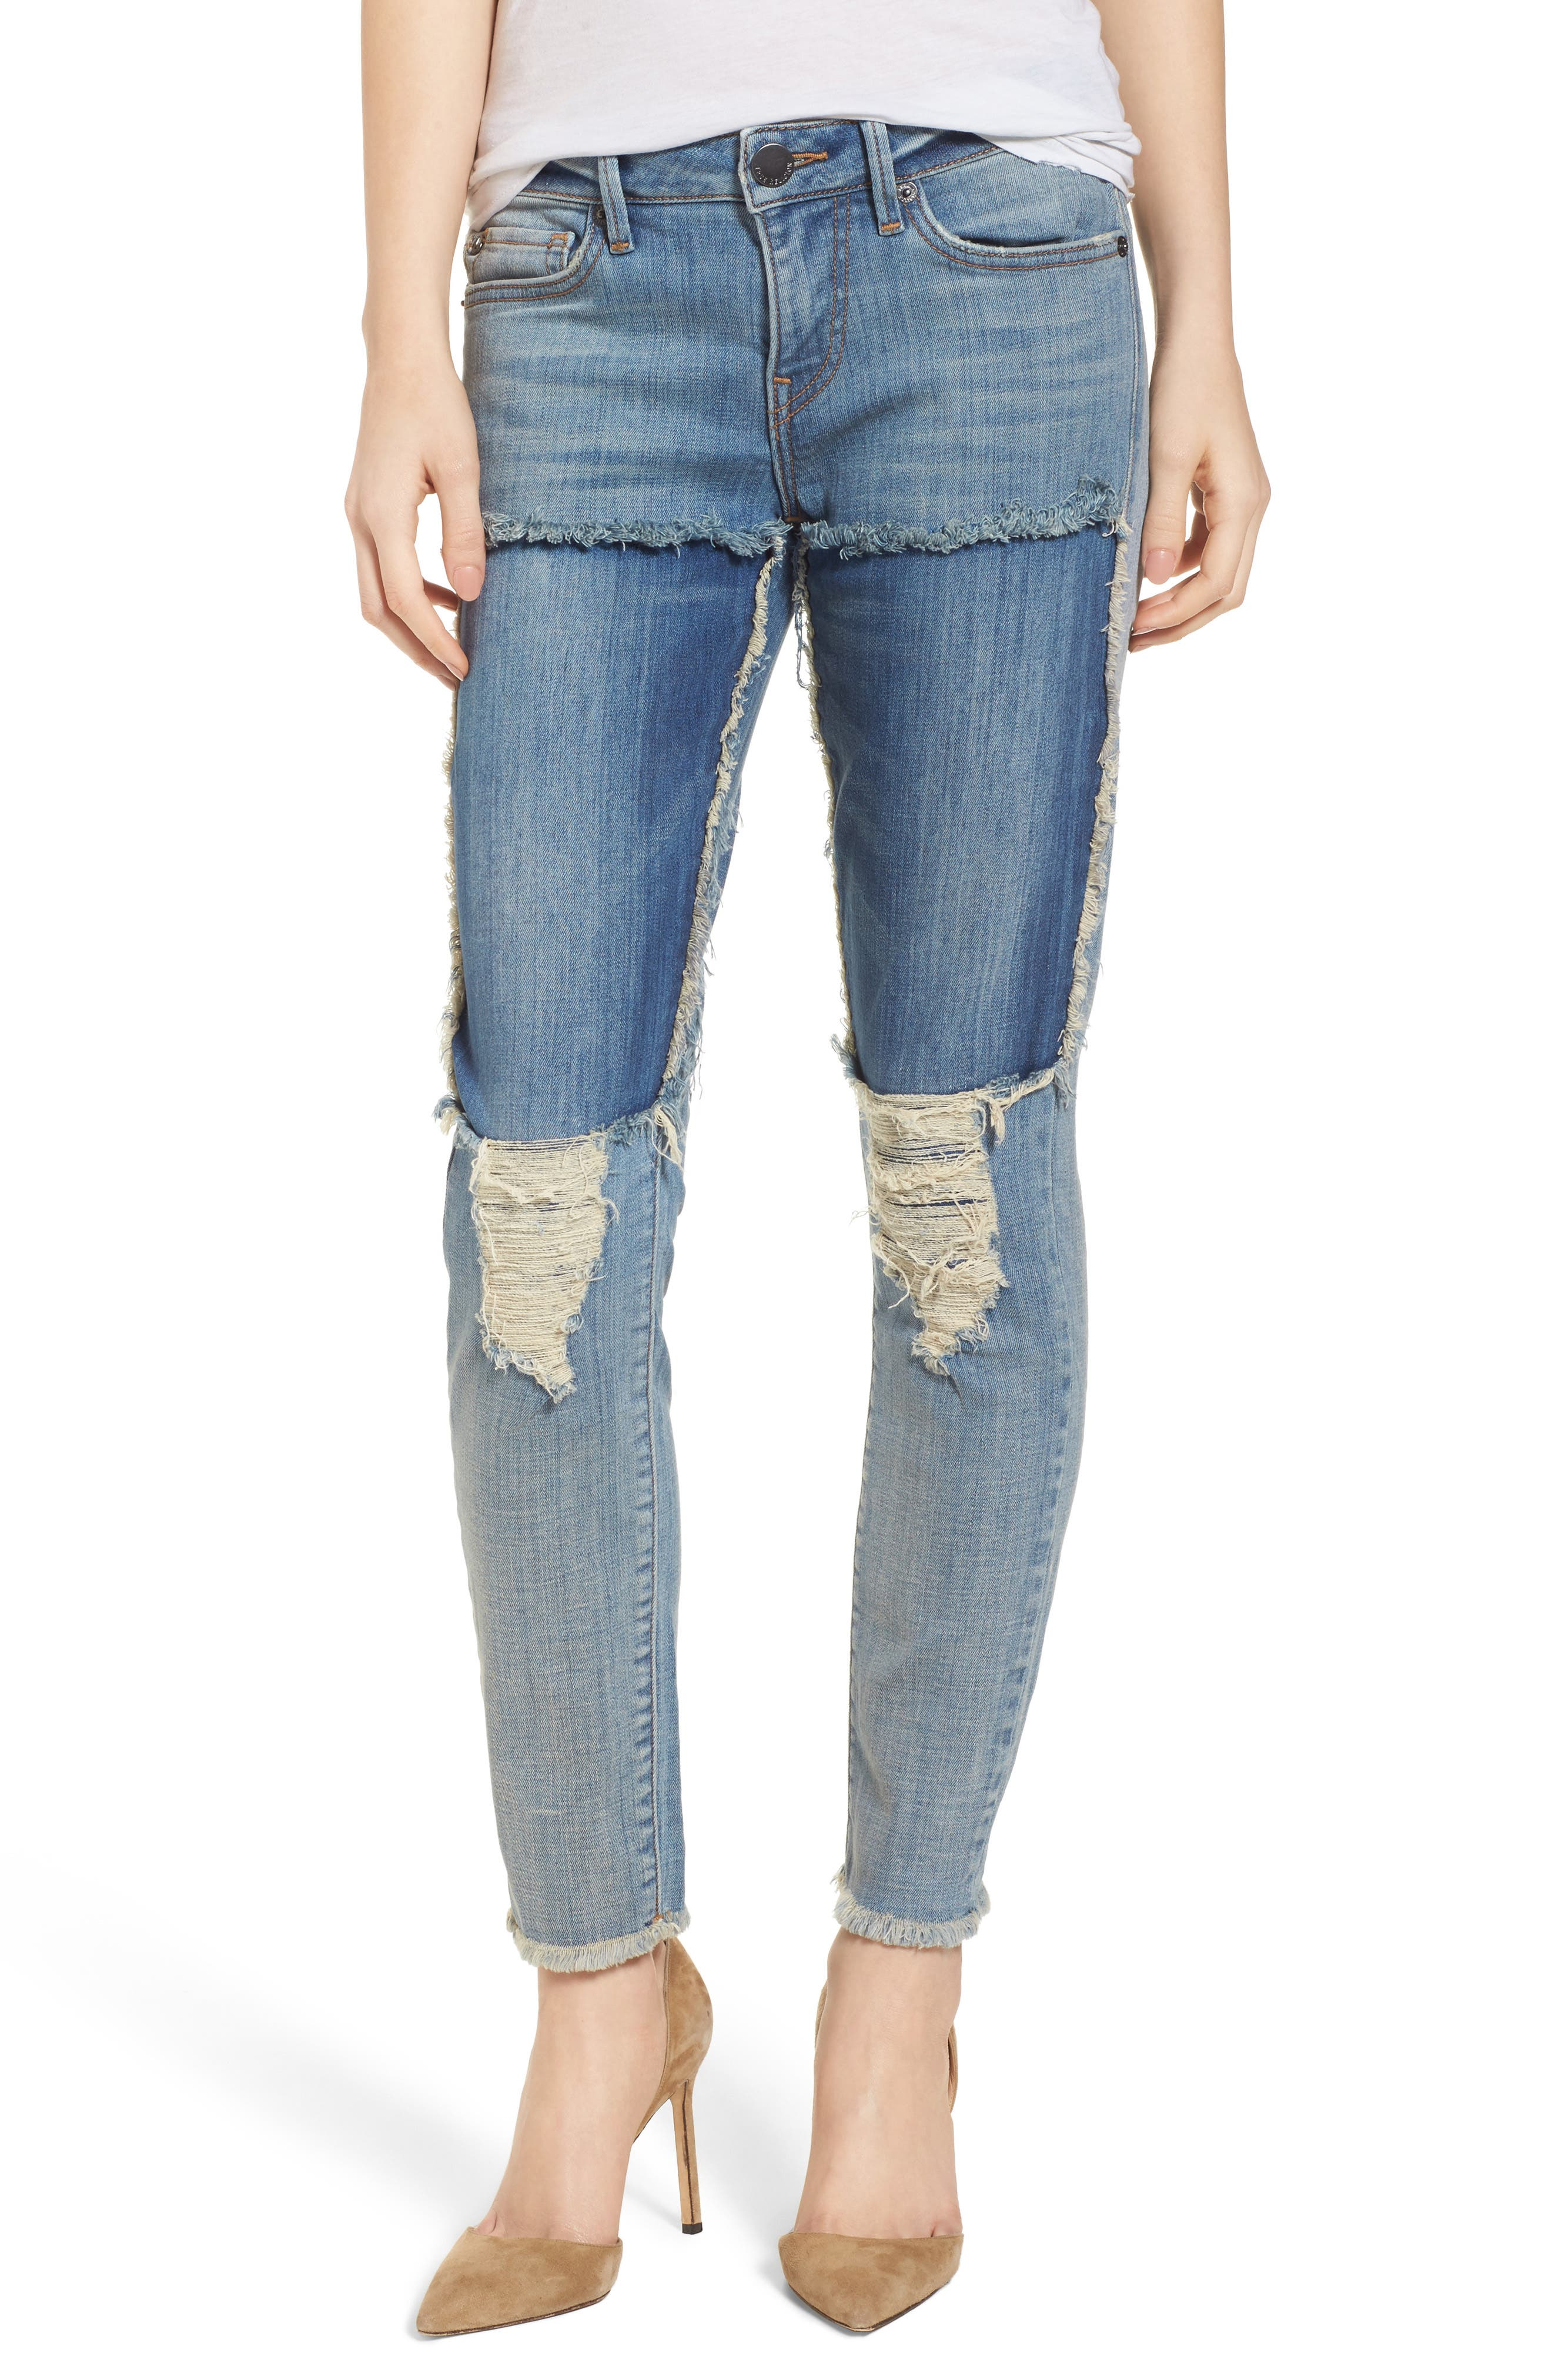 True Religion Brand Jeans Halle Super Skinny Jeans (Double Digit Blue)